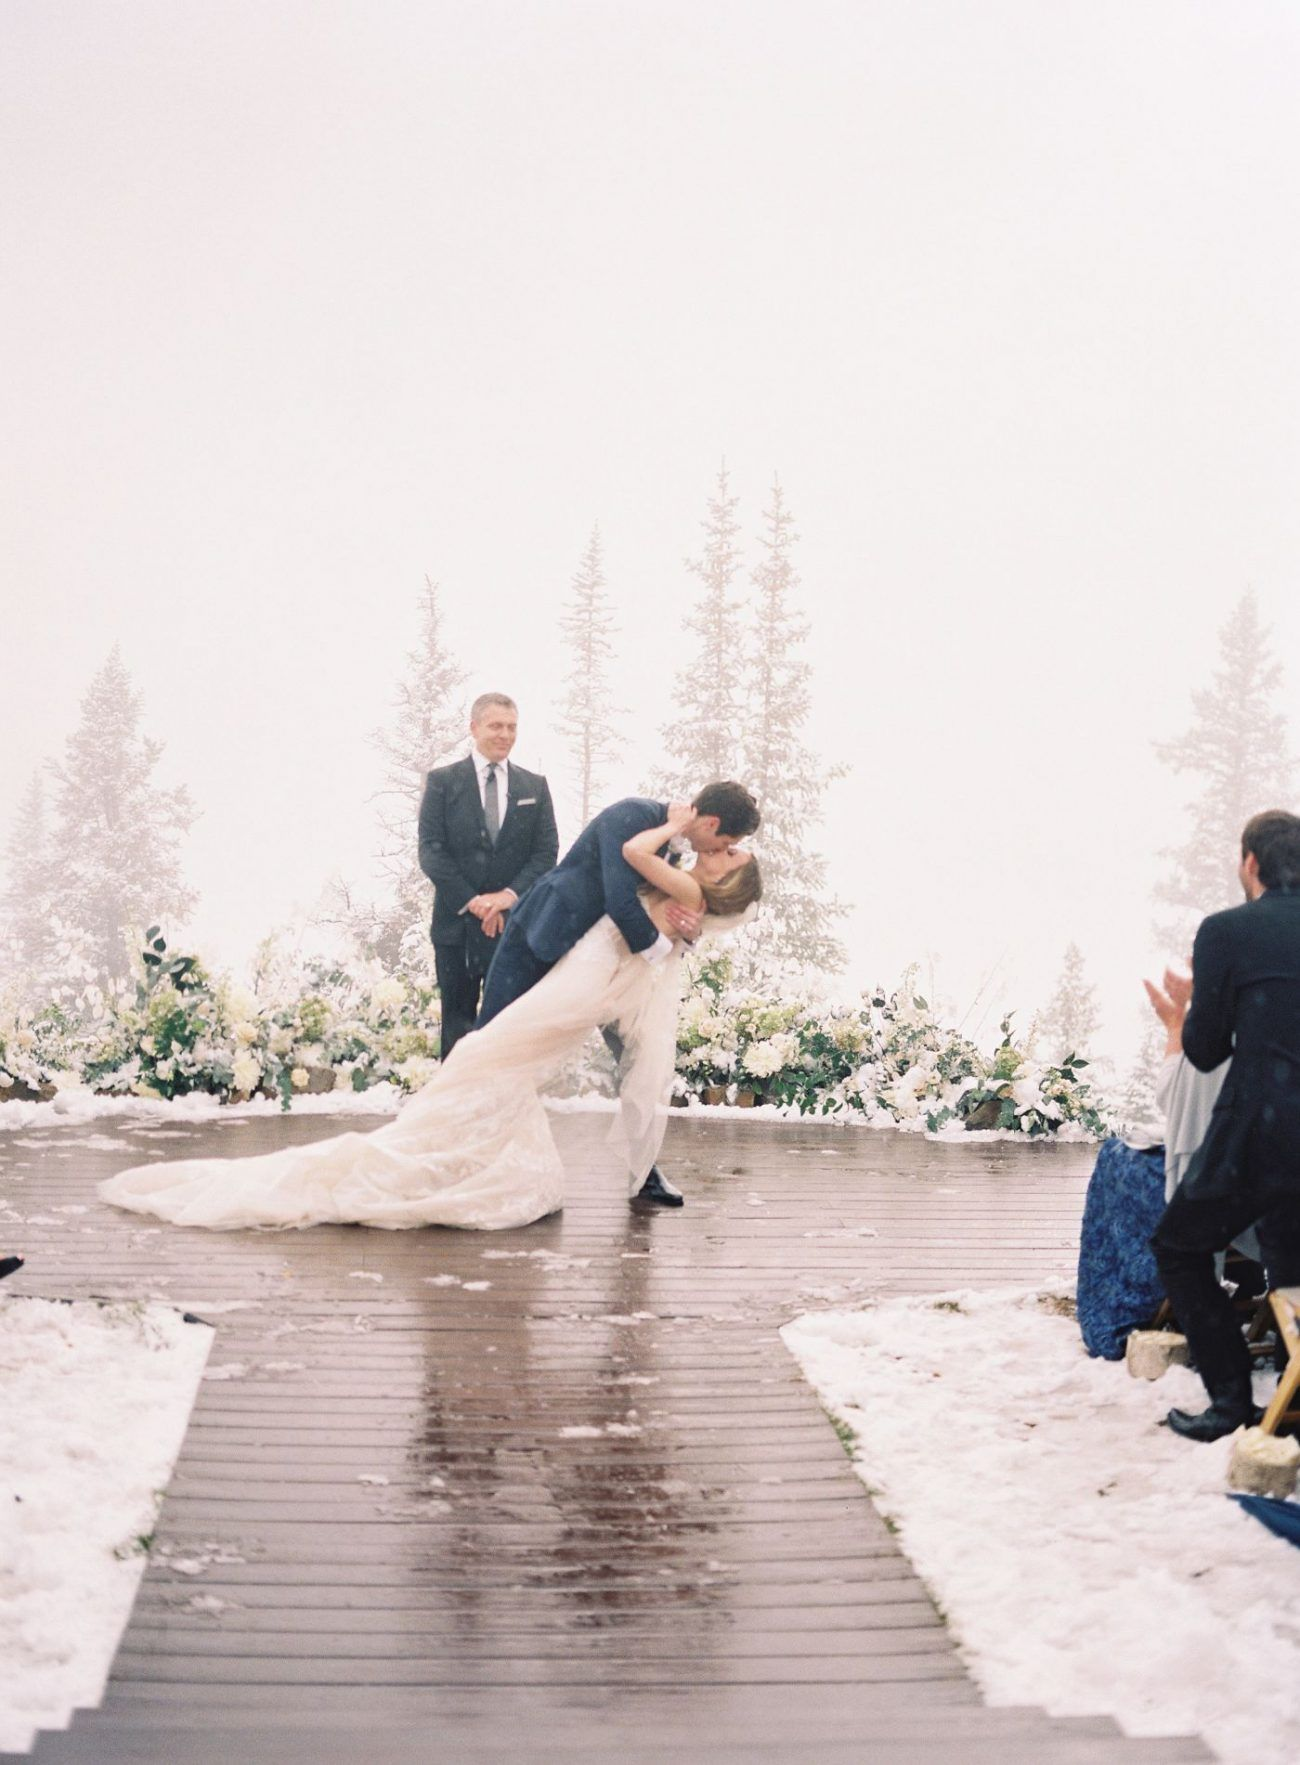 Heather-Payne-Mountaintop-Wedding-20